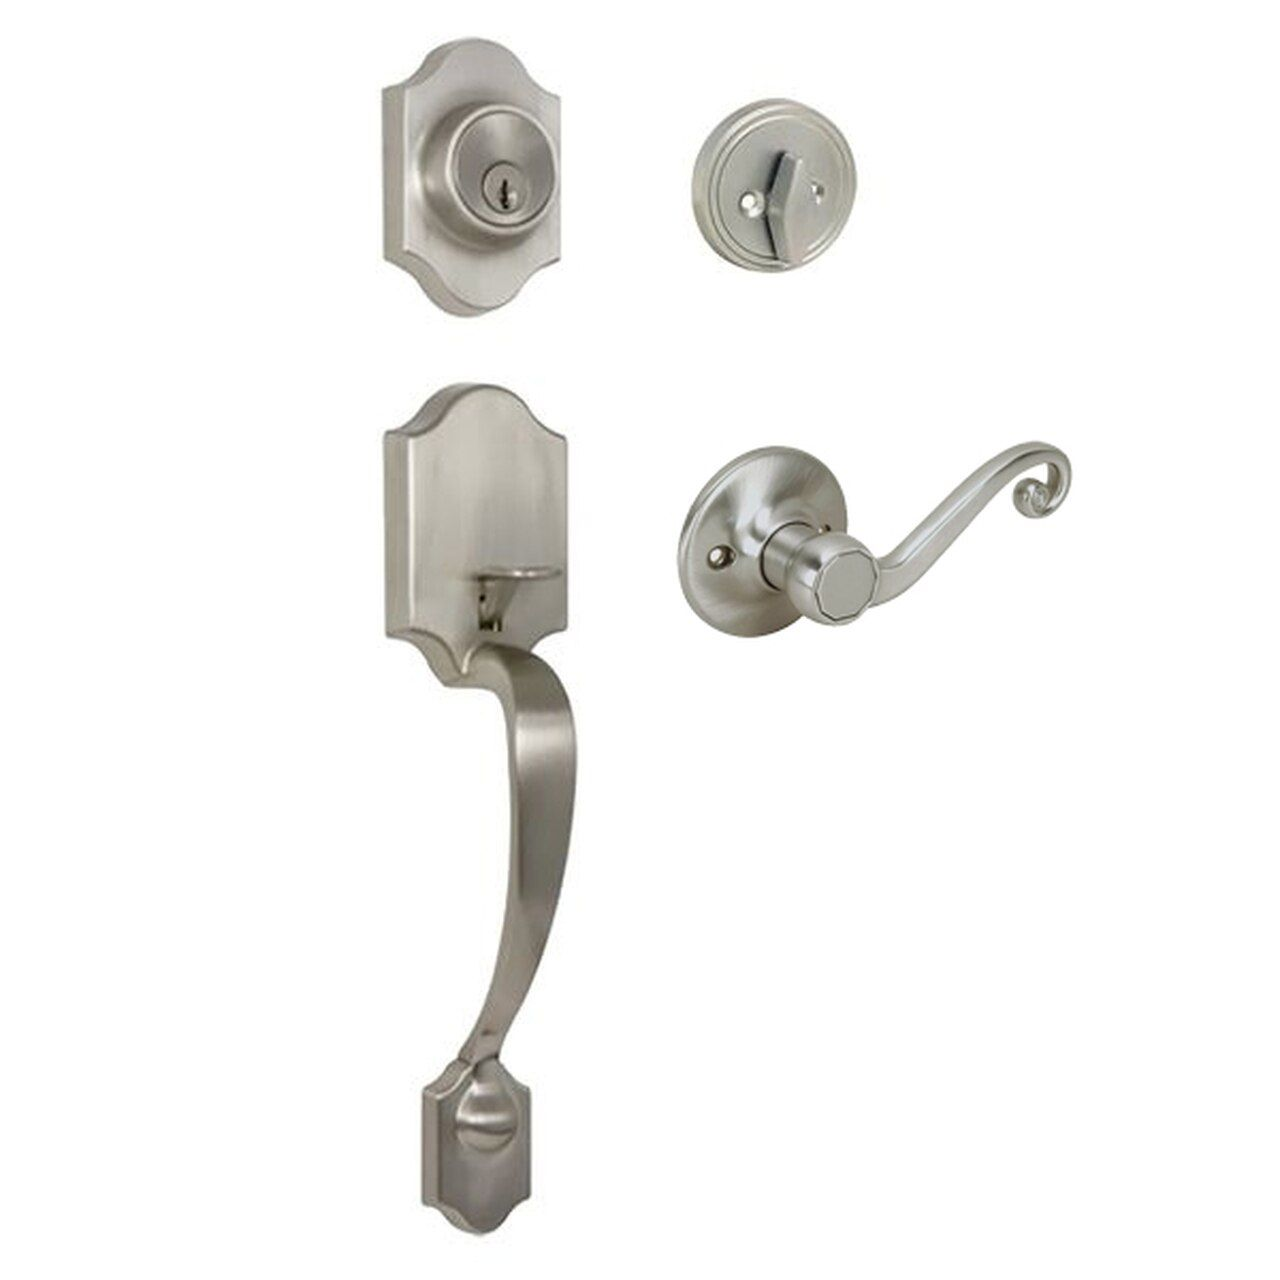 Valhala Satin Nickel Decorative Handleset with Livingston Lever